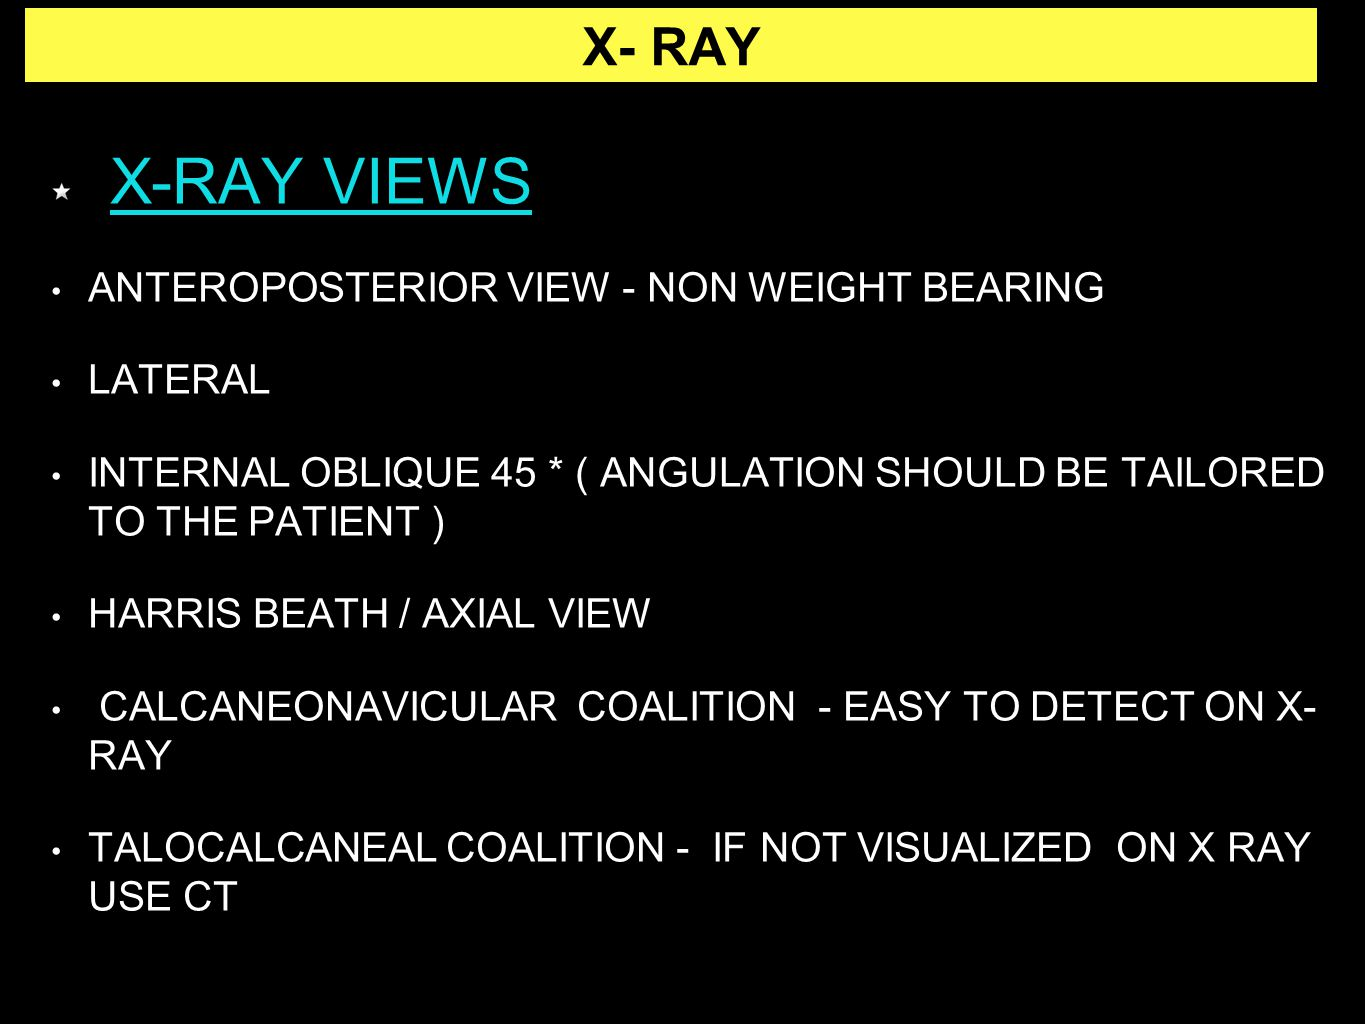 X-RAY VIEWS X- RAY ANTEROPOSTERIOR VIEW - NON WEIGHT BEARING LATERAL